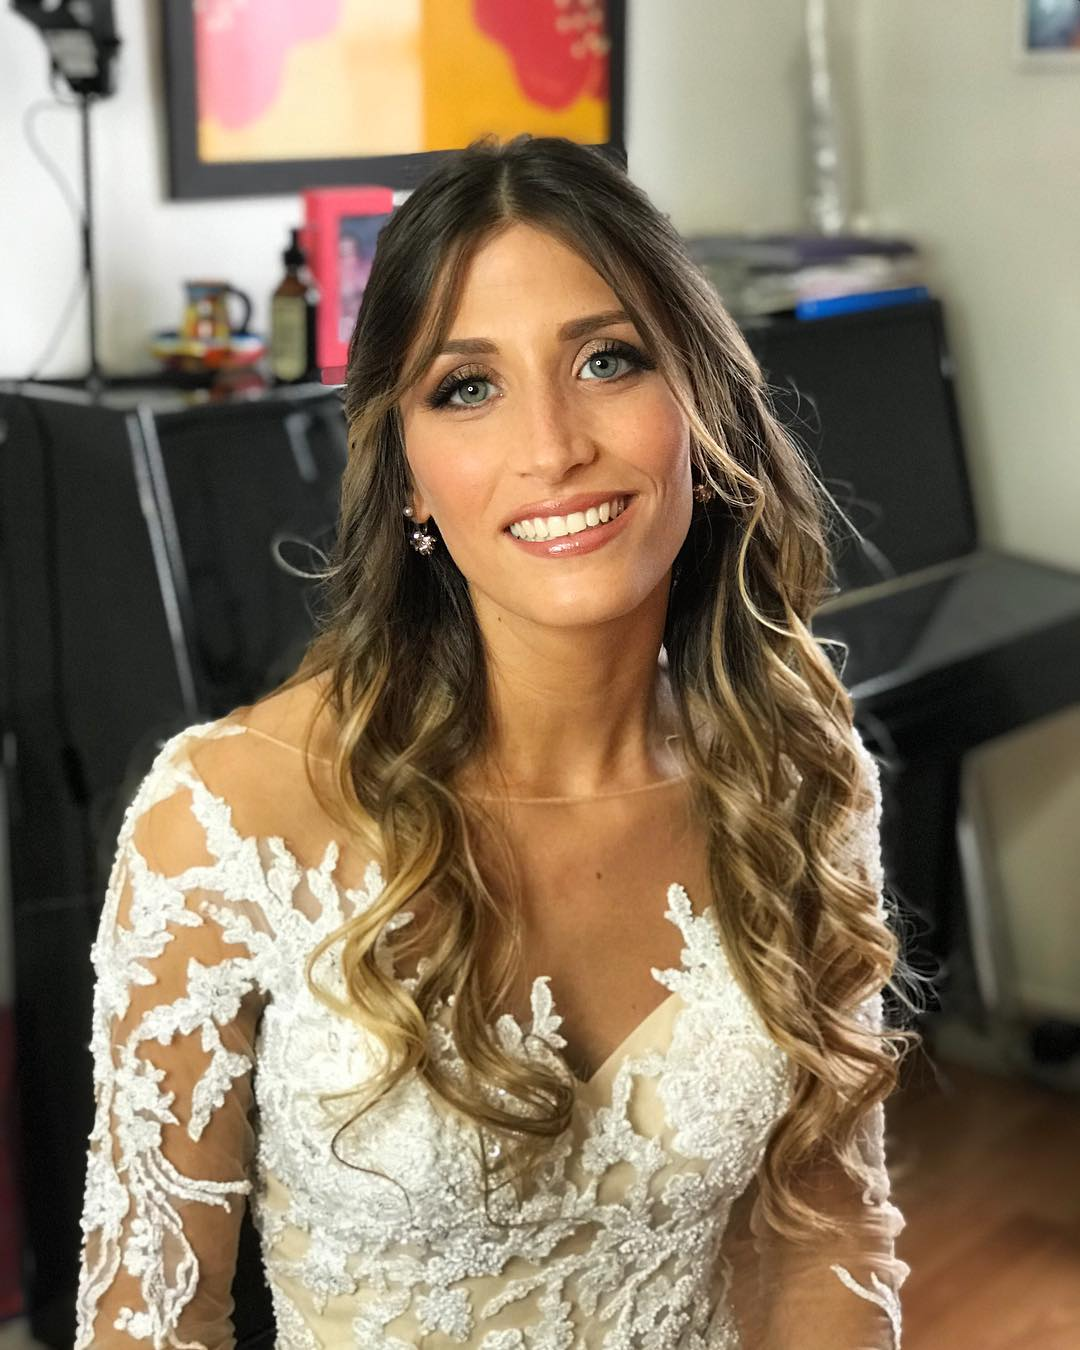 Maquillage Mariage France #199770771